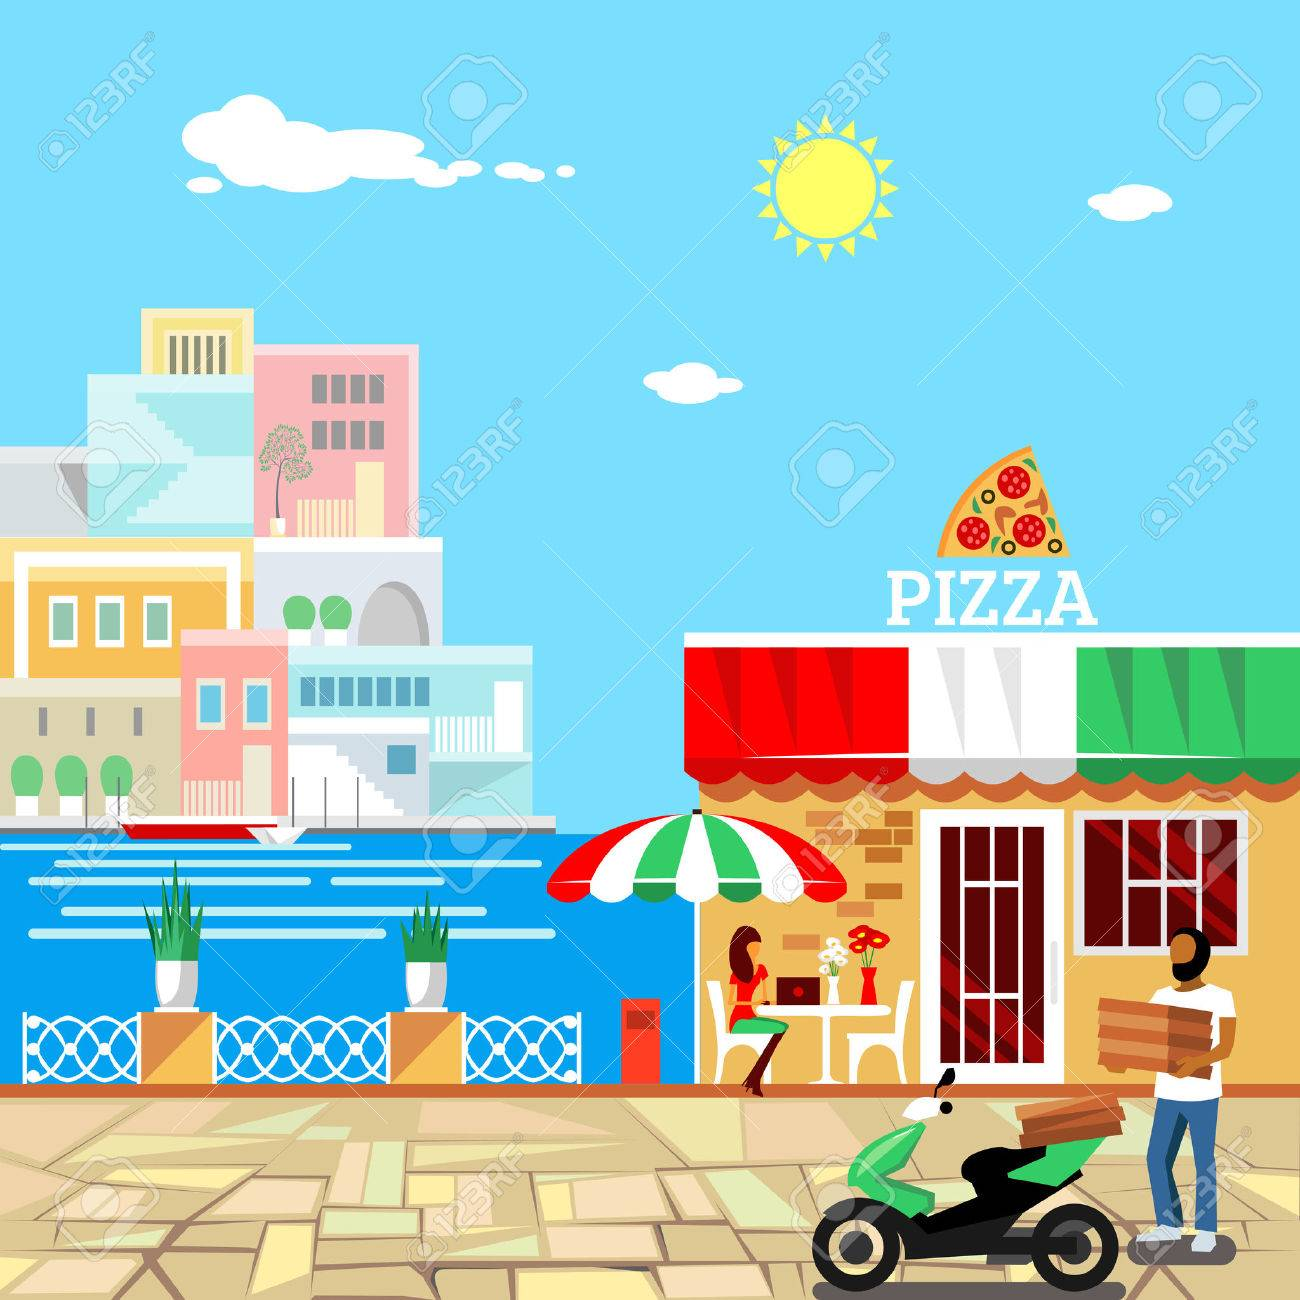 Pizza restaurant with terrace in front. Man delivers pizza. Calm place in city center. Woman eats pizza at the table. Pizzeria building . Summer facade. Midday. Hot weather. Vector illustration - 52613736